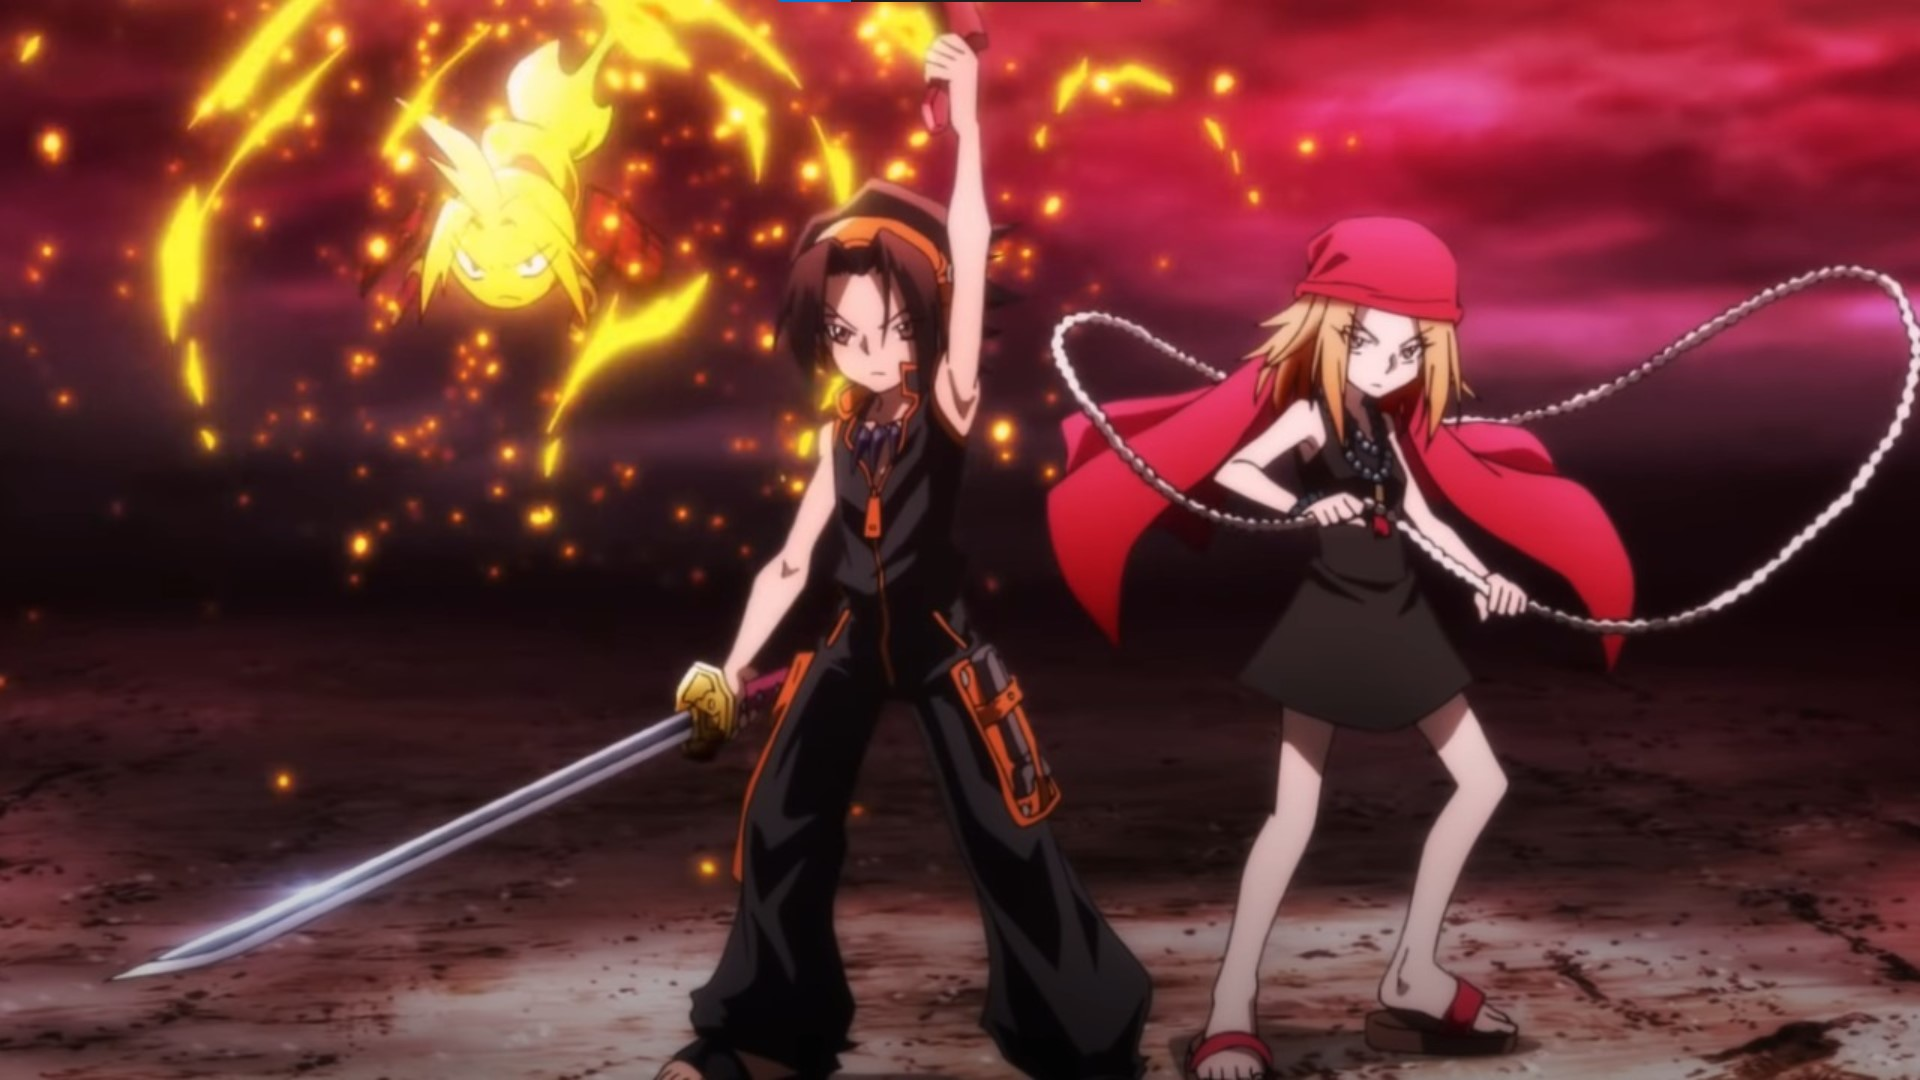 Shaman King- anime like Jujutsu Kaisen